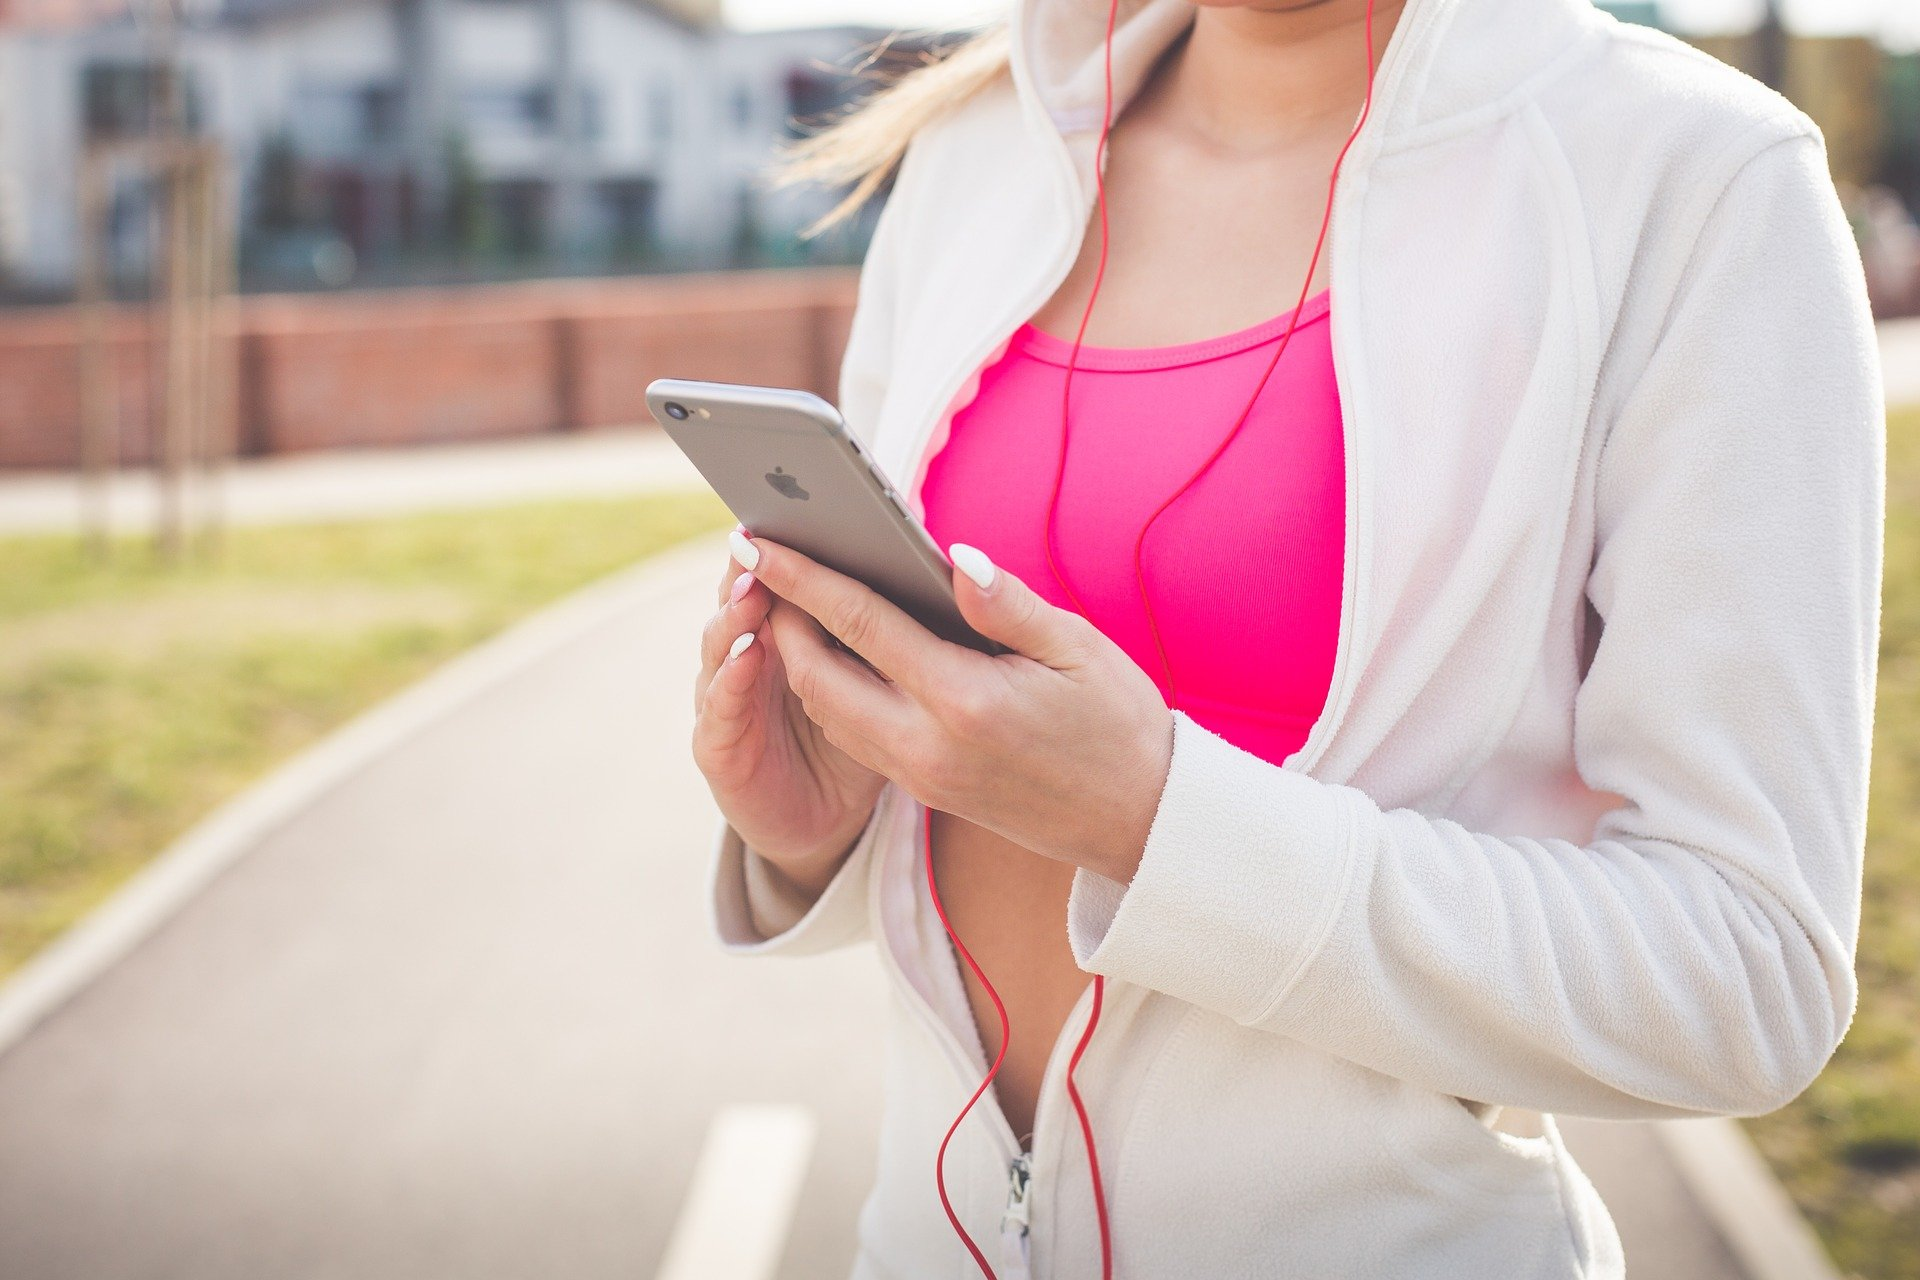 3-benefits-of-exercise-that-have-surprised-me-the-most